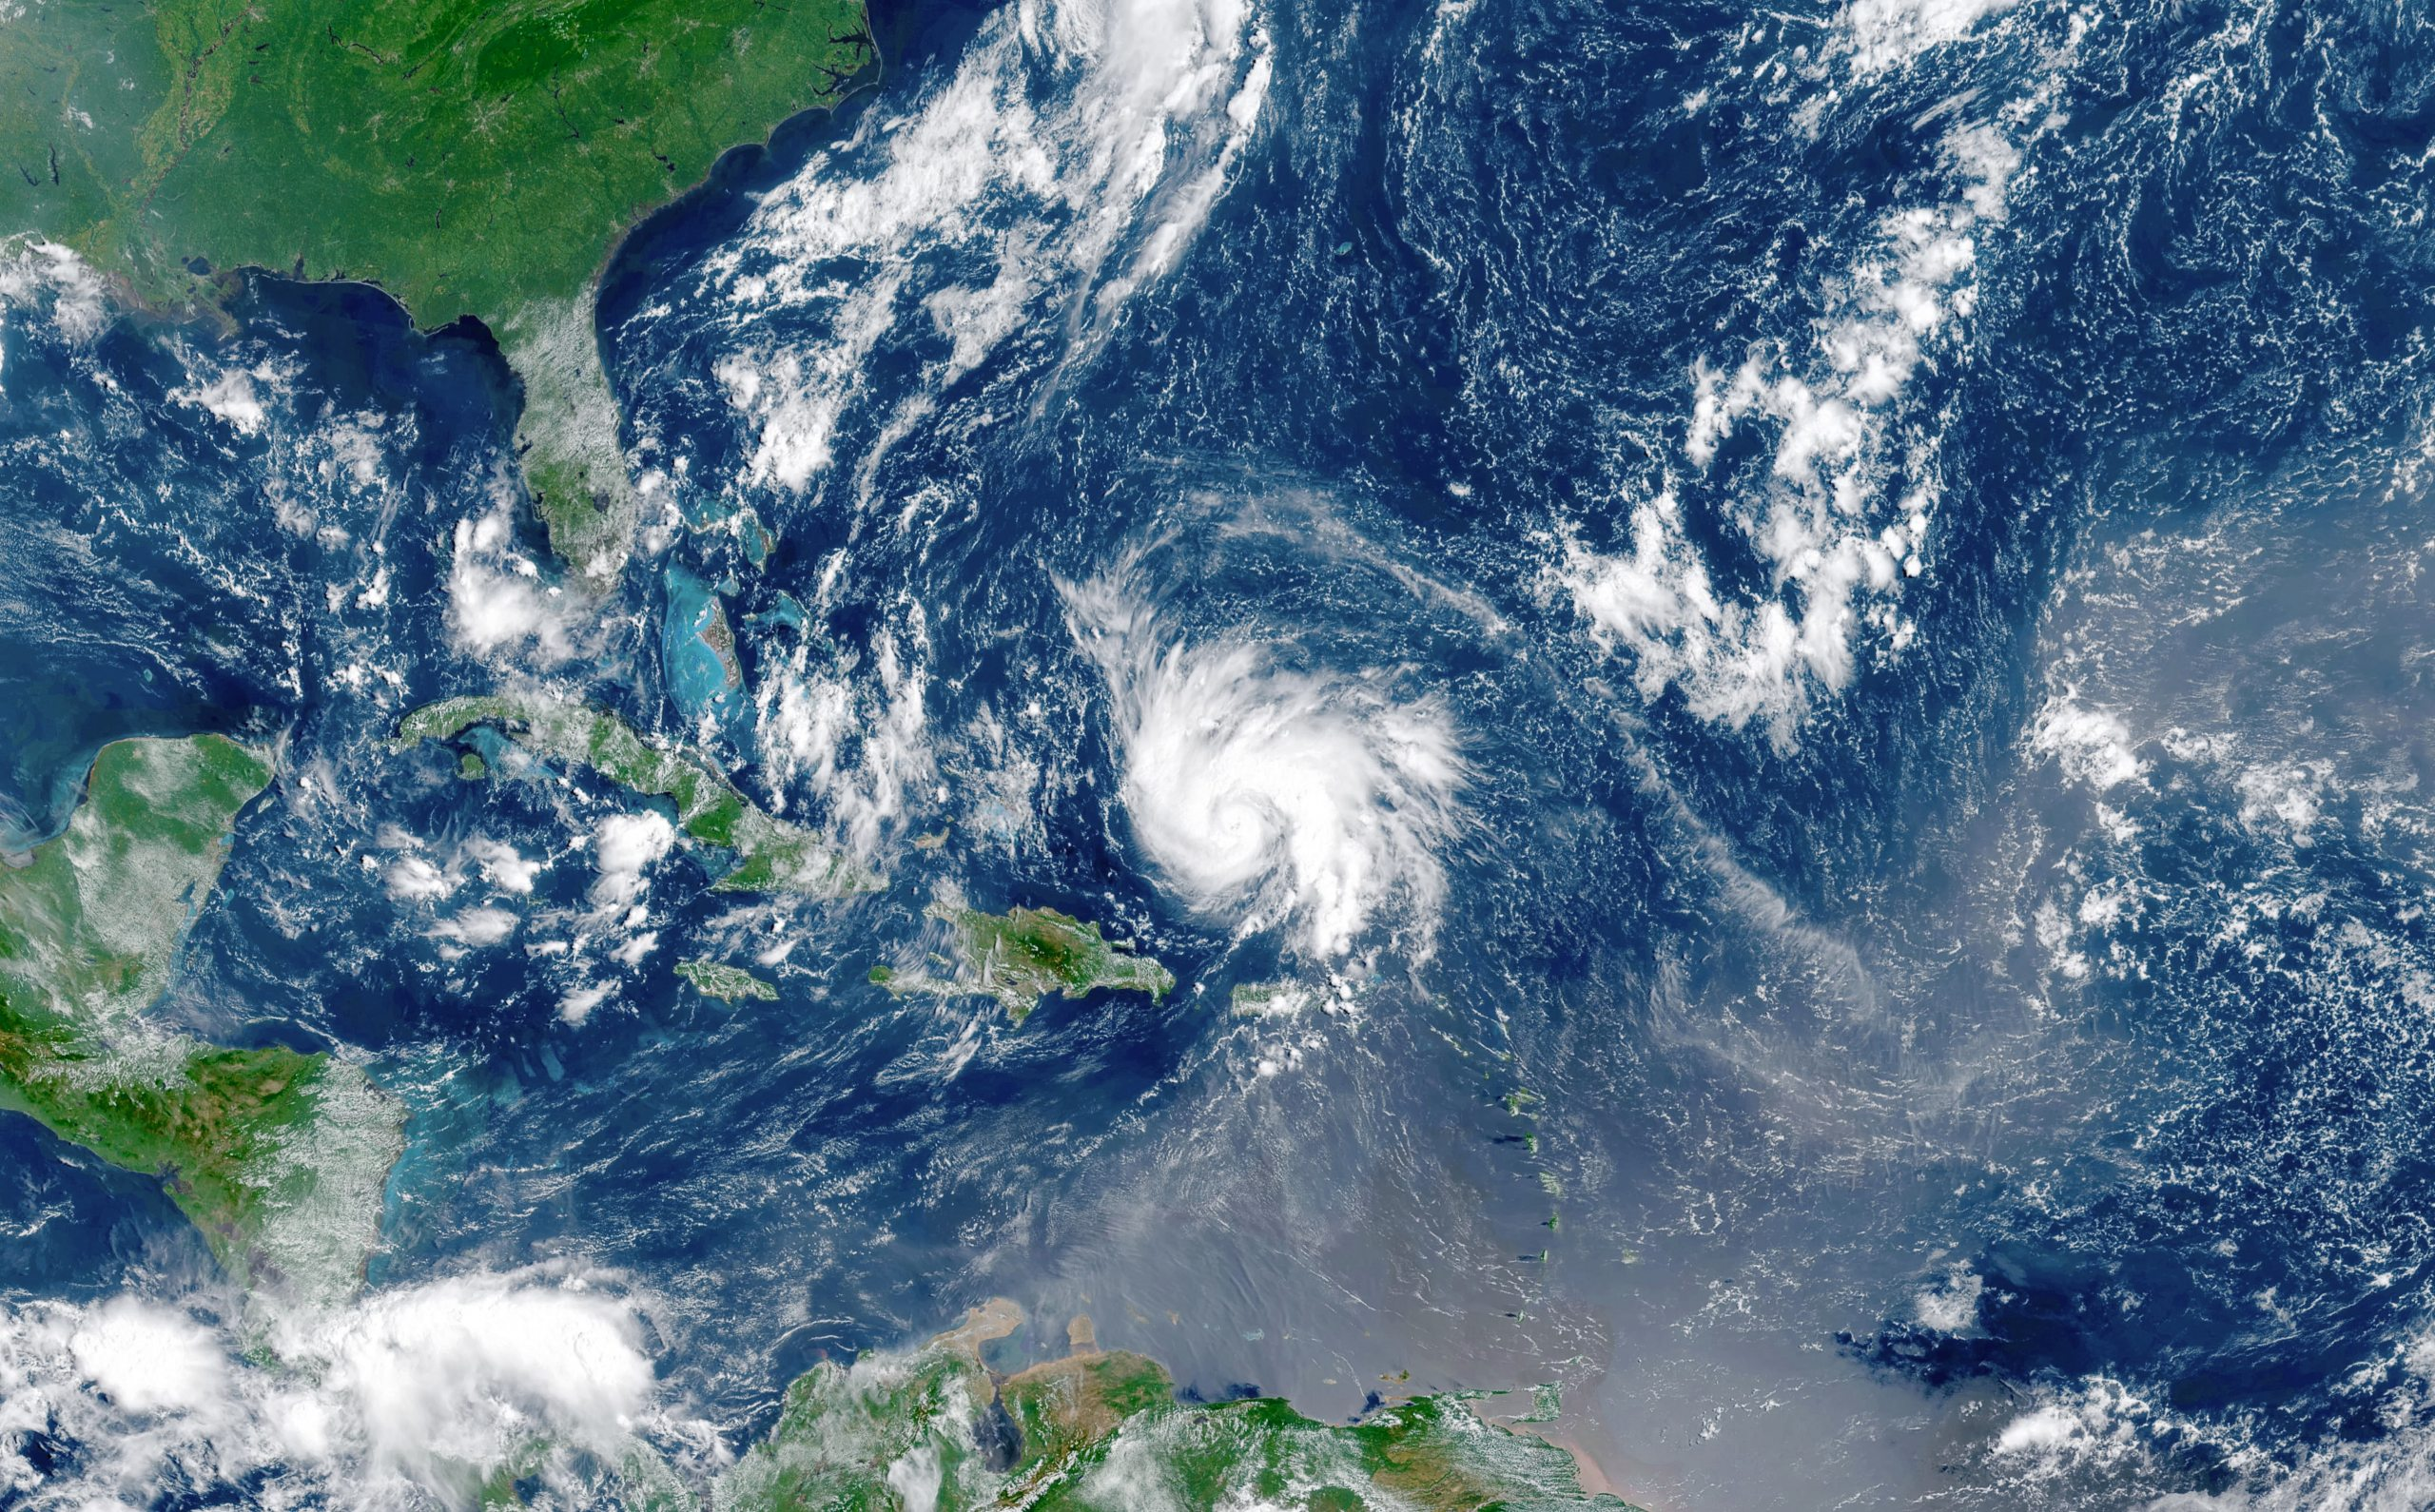 A satellite view of a hurricane forming in the Atlantic Ocean.